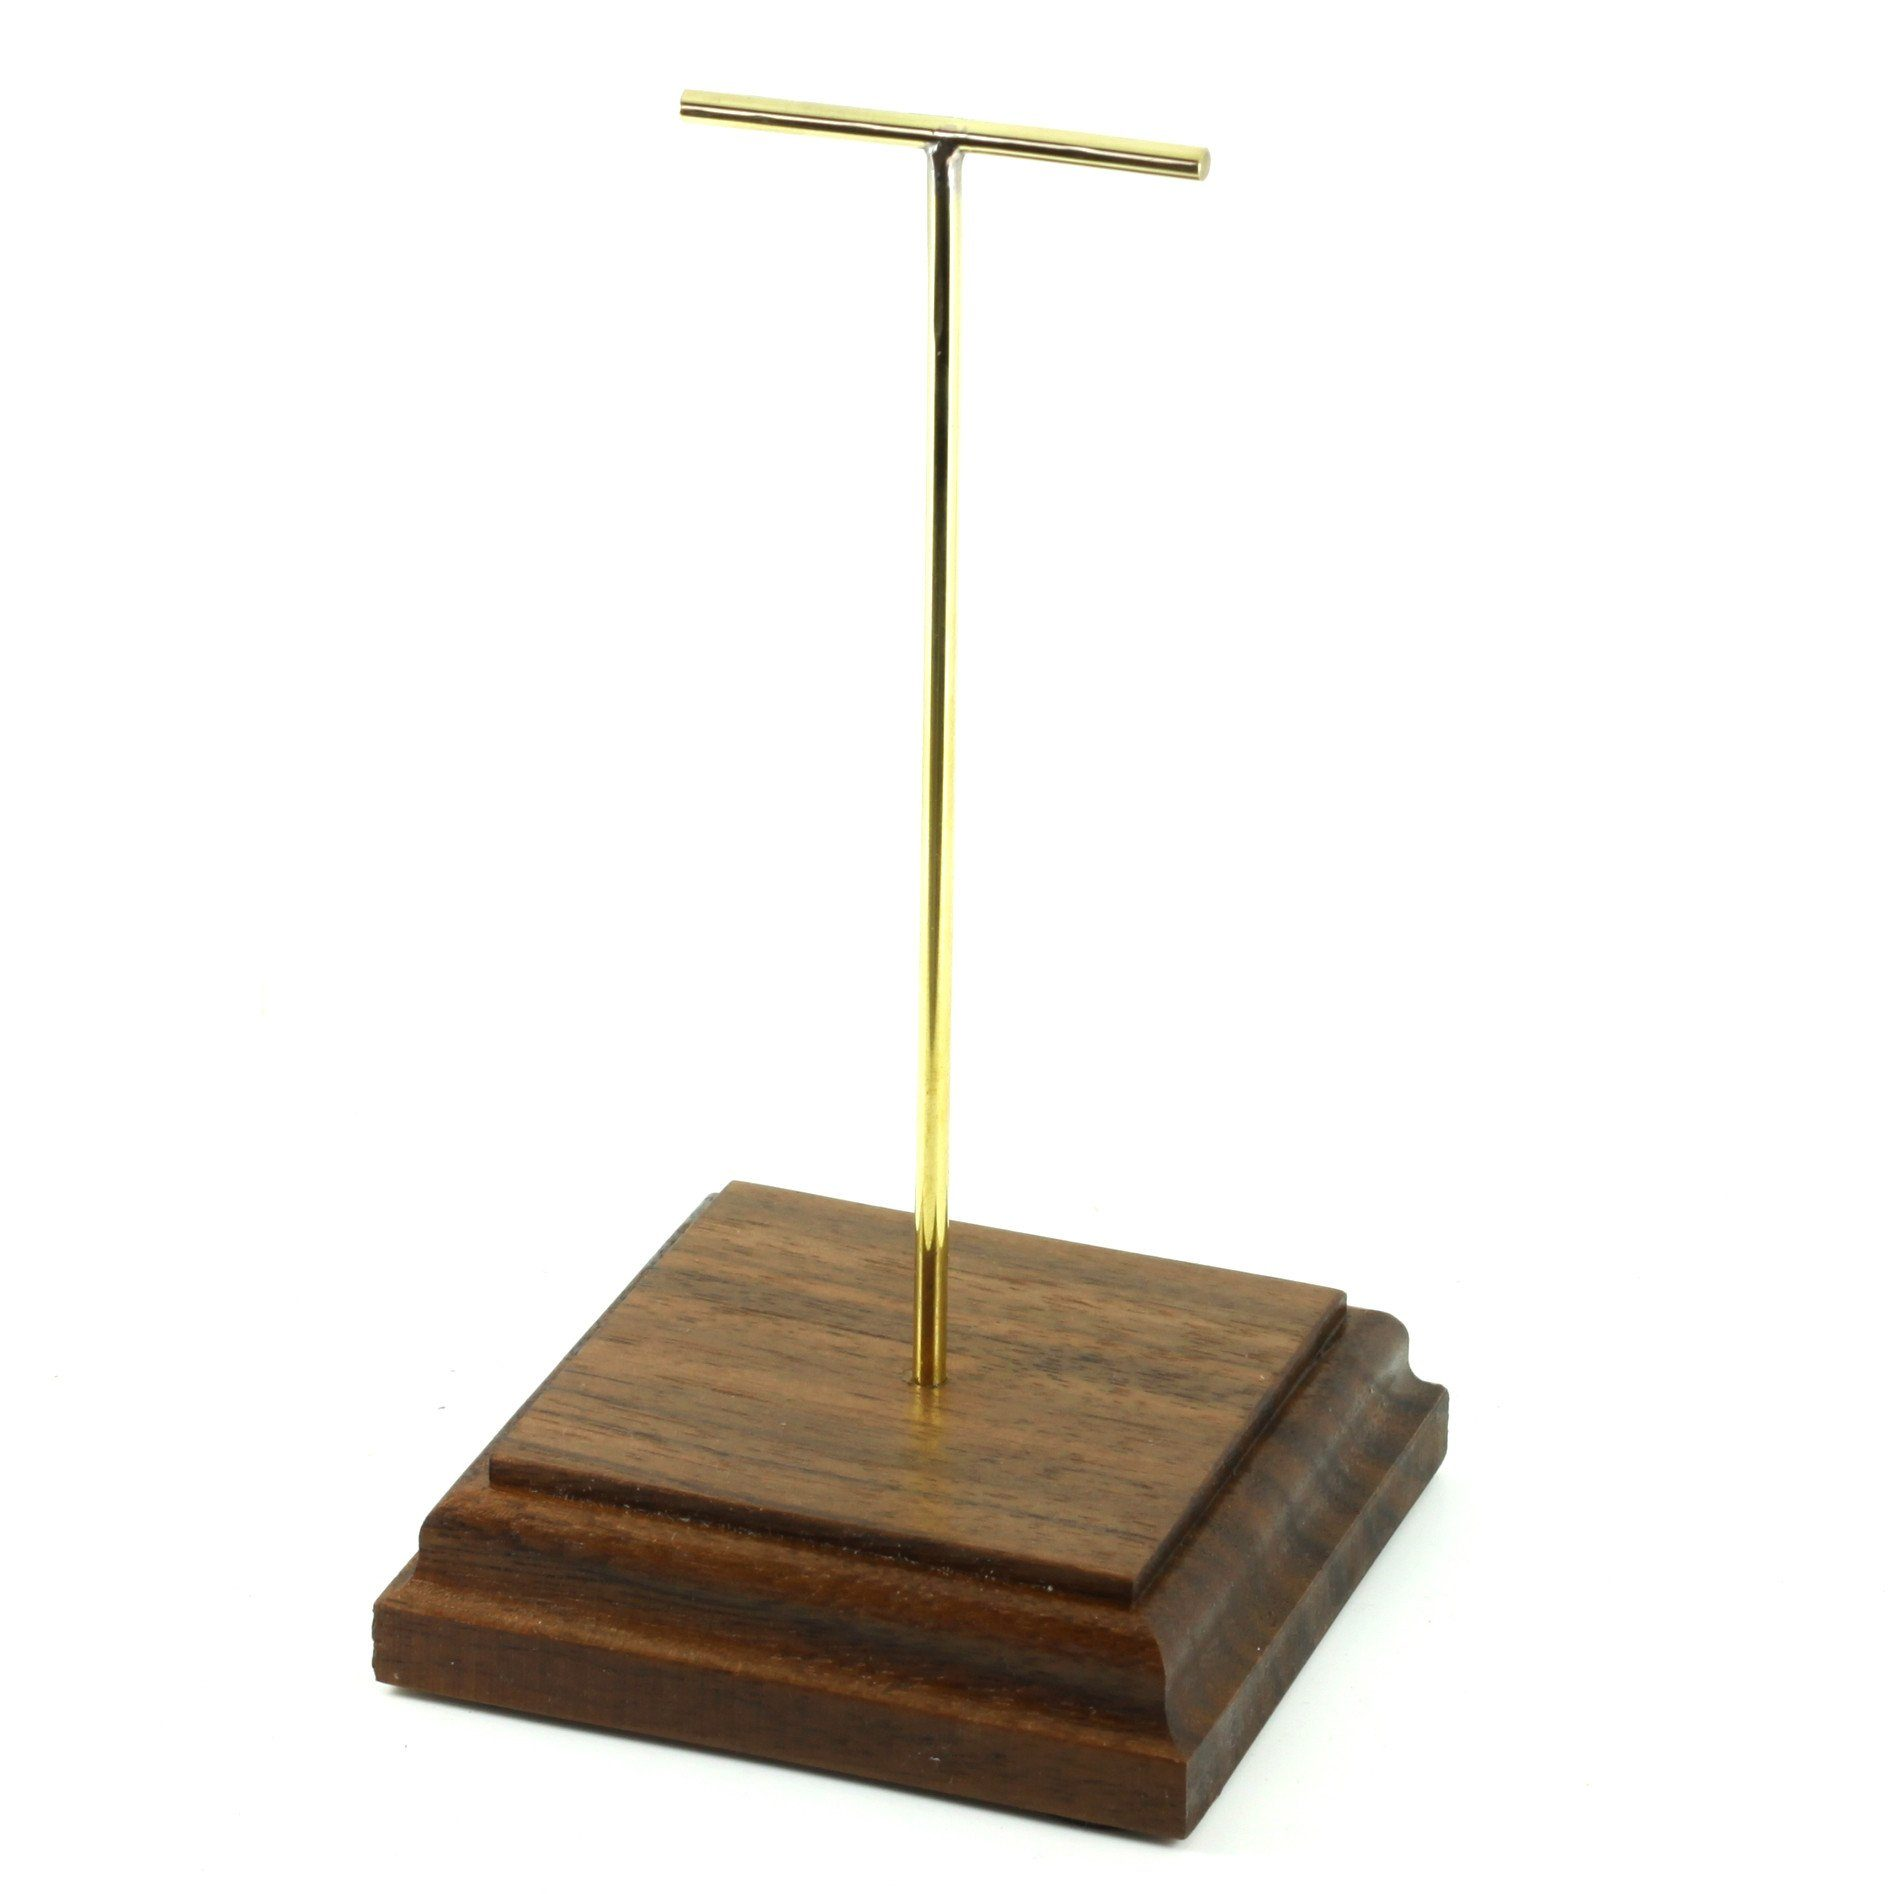 Exhibition Stand Weight : Ear weight earring display stands southshore adornments